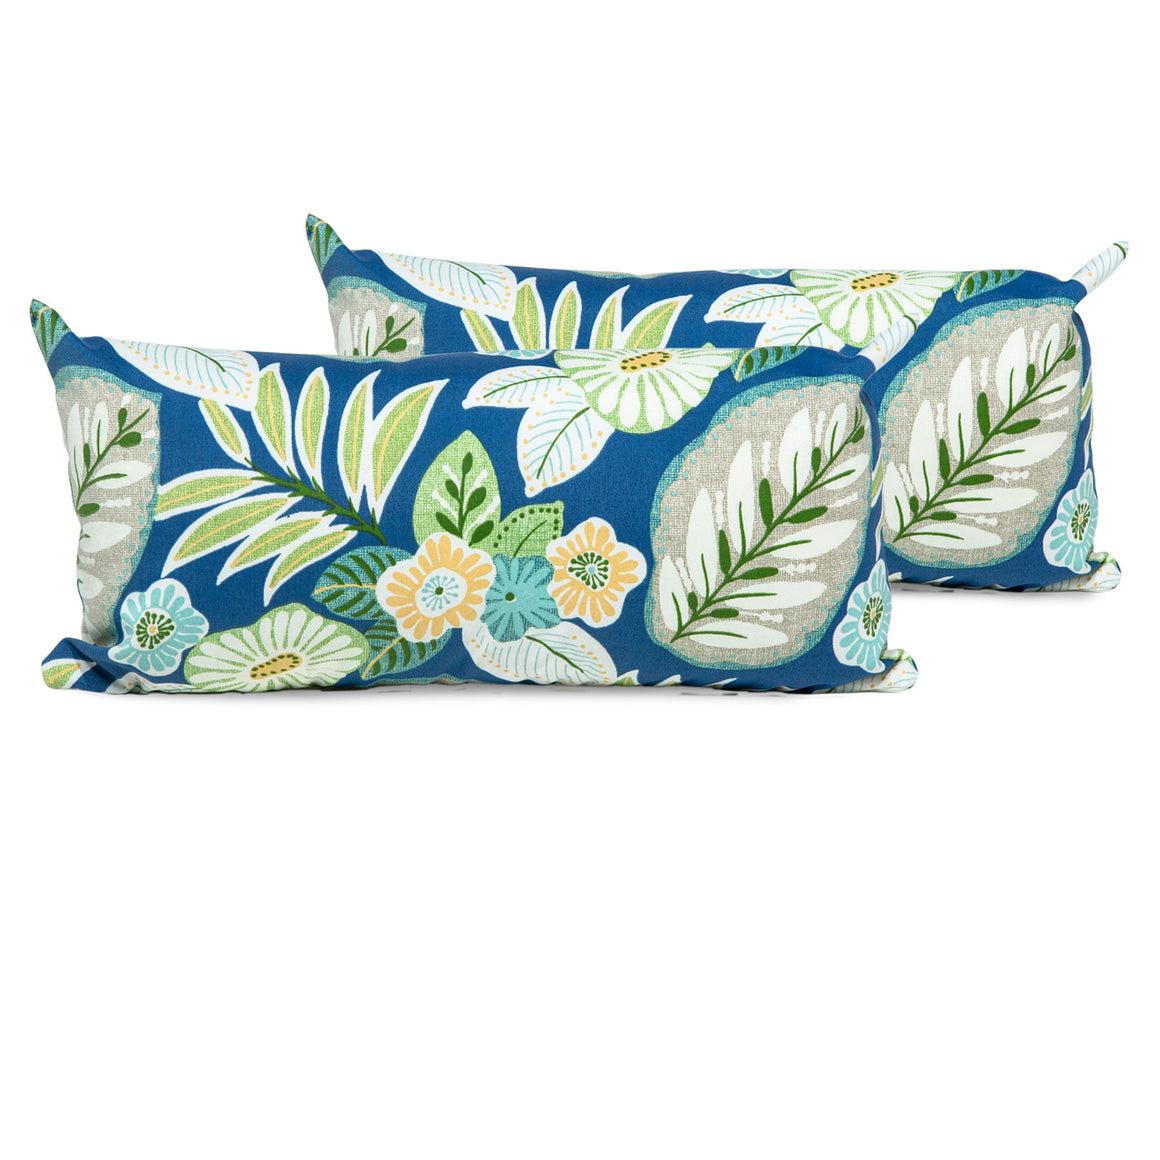 Blue Tropical Floral Outdoor Throw Pillows Rectangle Set of 2 , TK Classics- grayburd